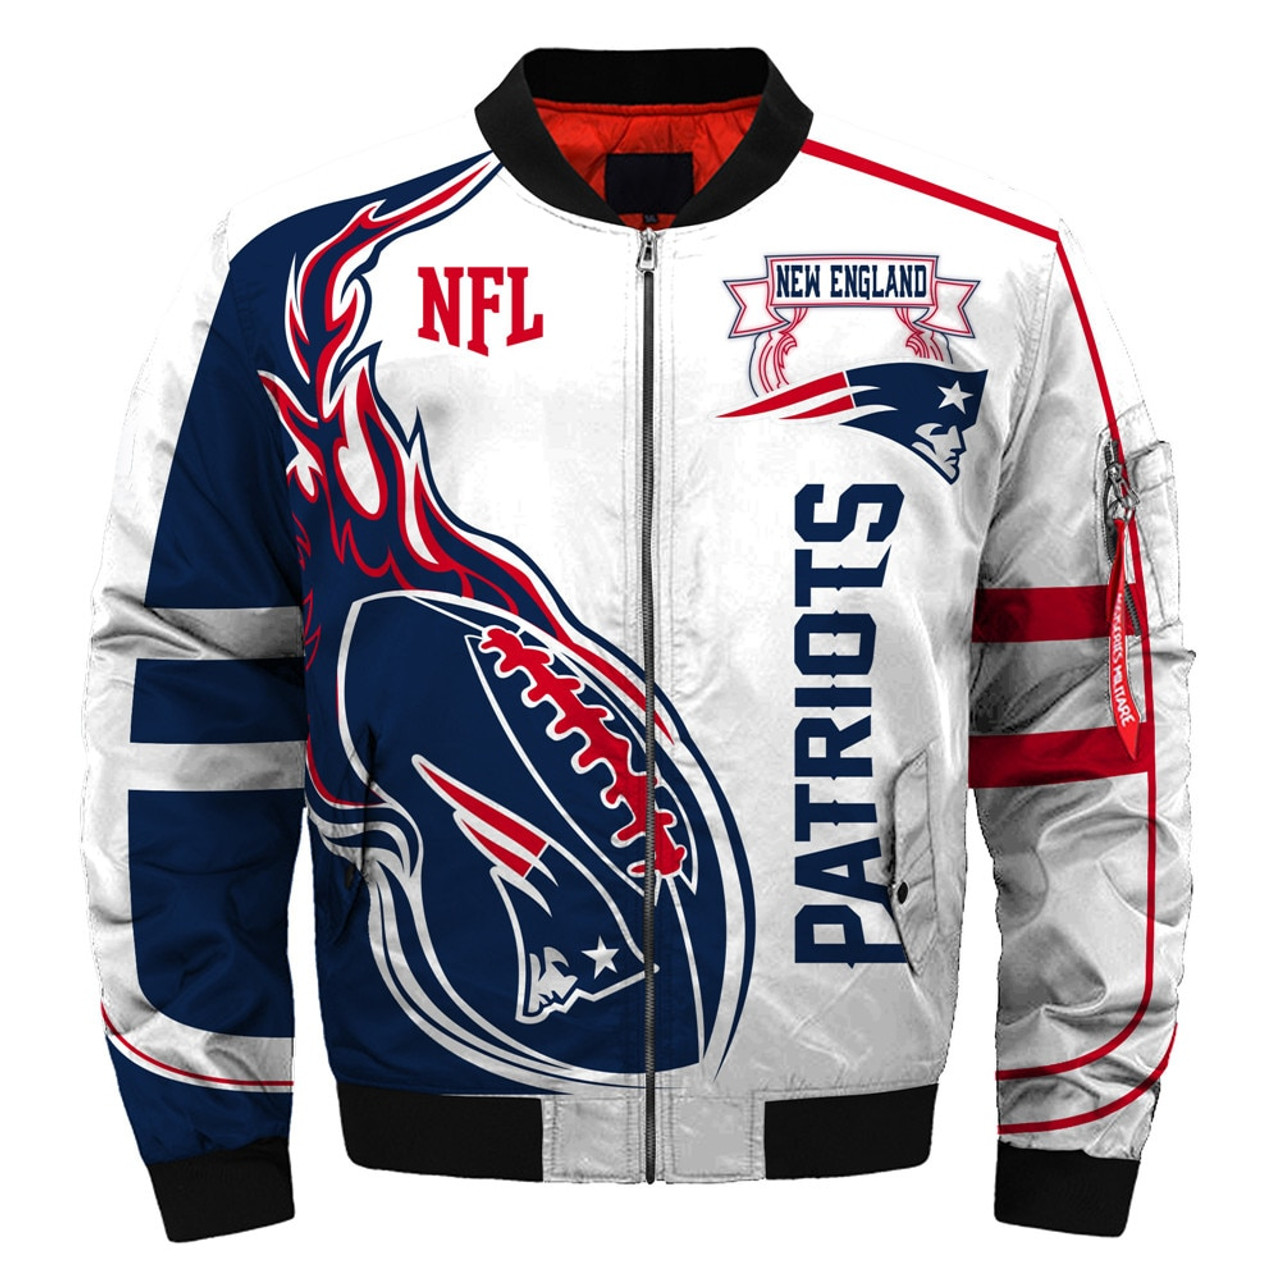 patriots england team official jacket bomber custom graphic jackets 3d double colors flight apparel logos printed sided warm nice premium